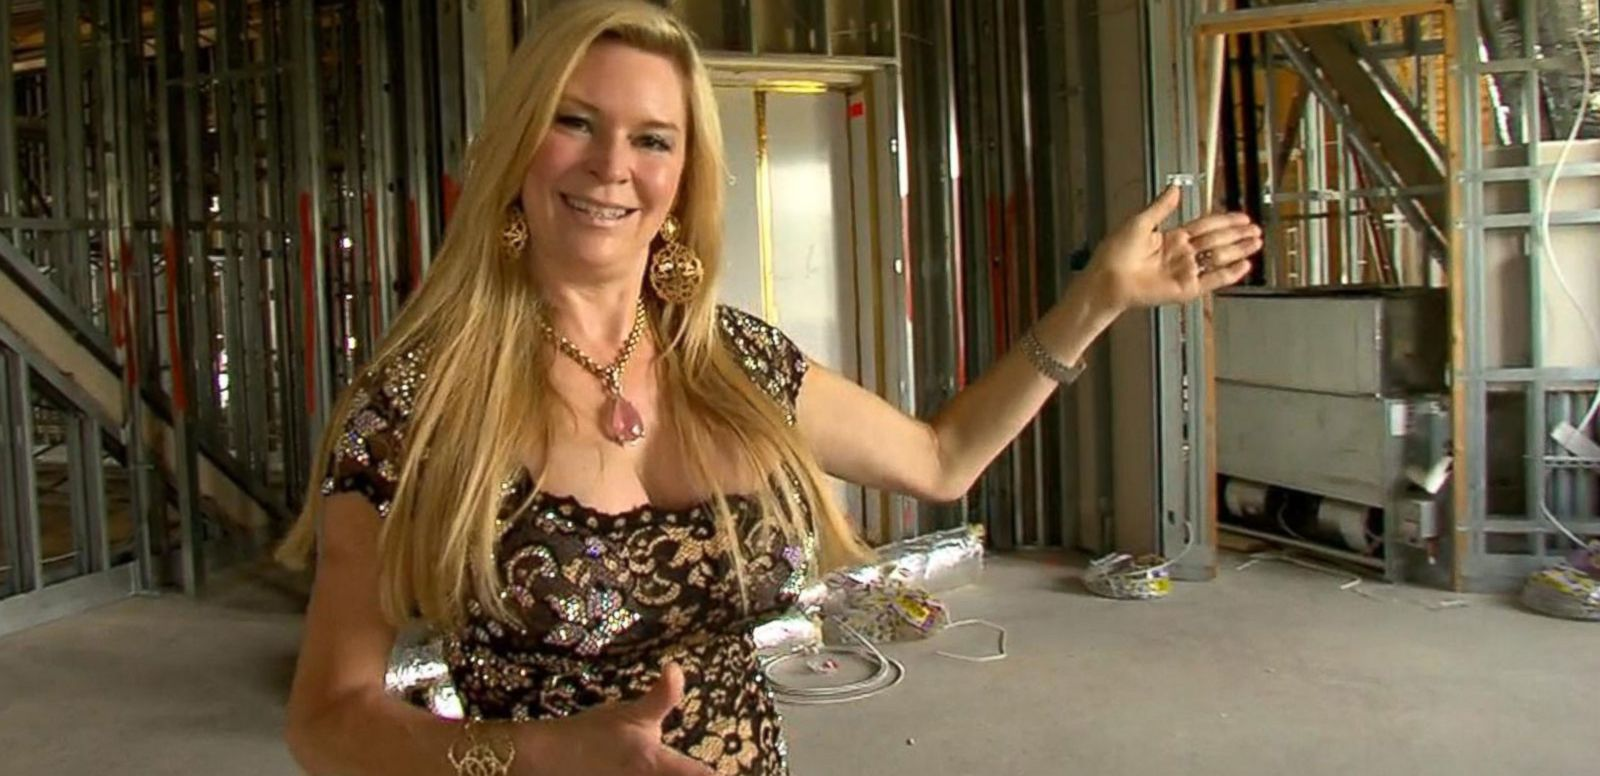 VIDEO: 'Queen of Versailles' Gives Tour of 90,00-Sq-Ft. Orlando Mansion